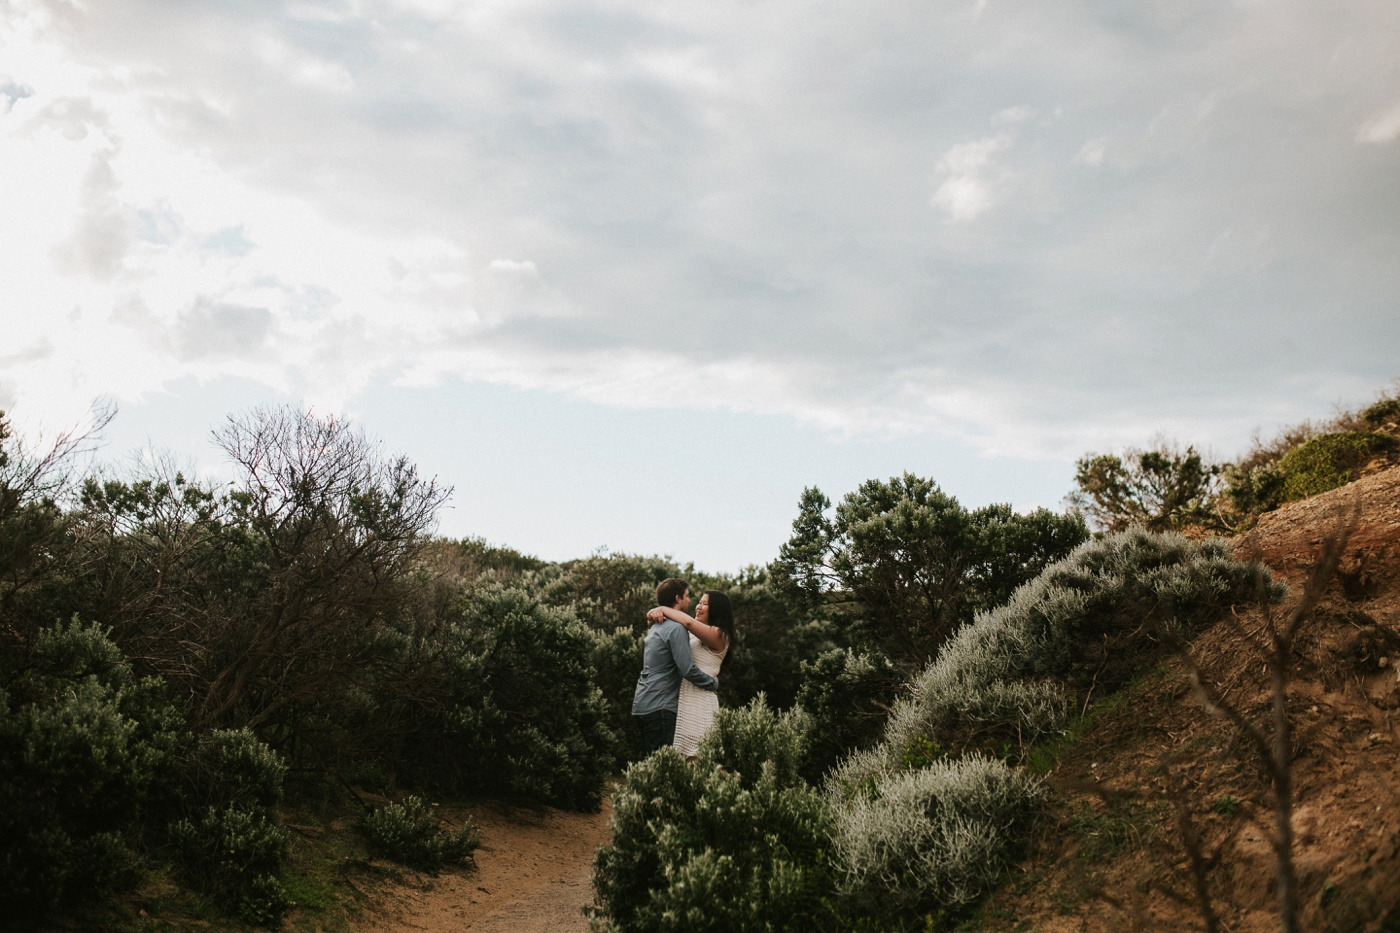 alliedave_mornington-peninsula-back-beach-relaxed-engagement-session_melbourne-candid-wedding-photographer_23